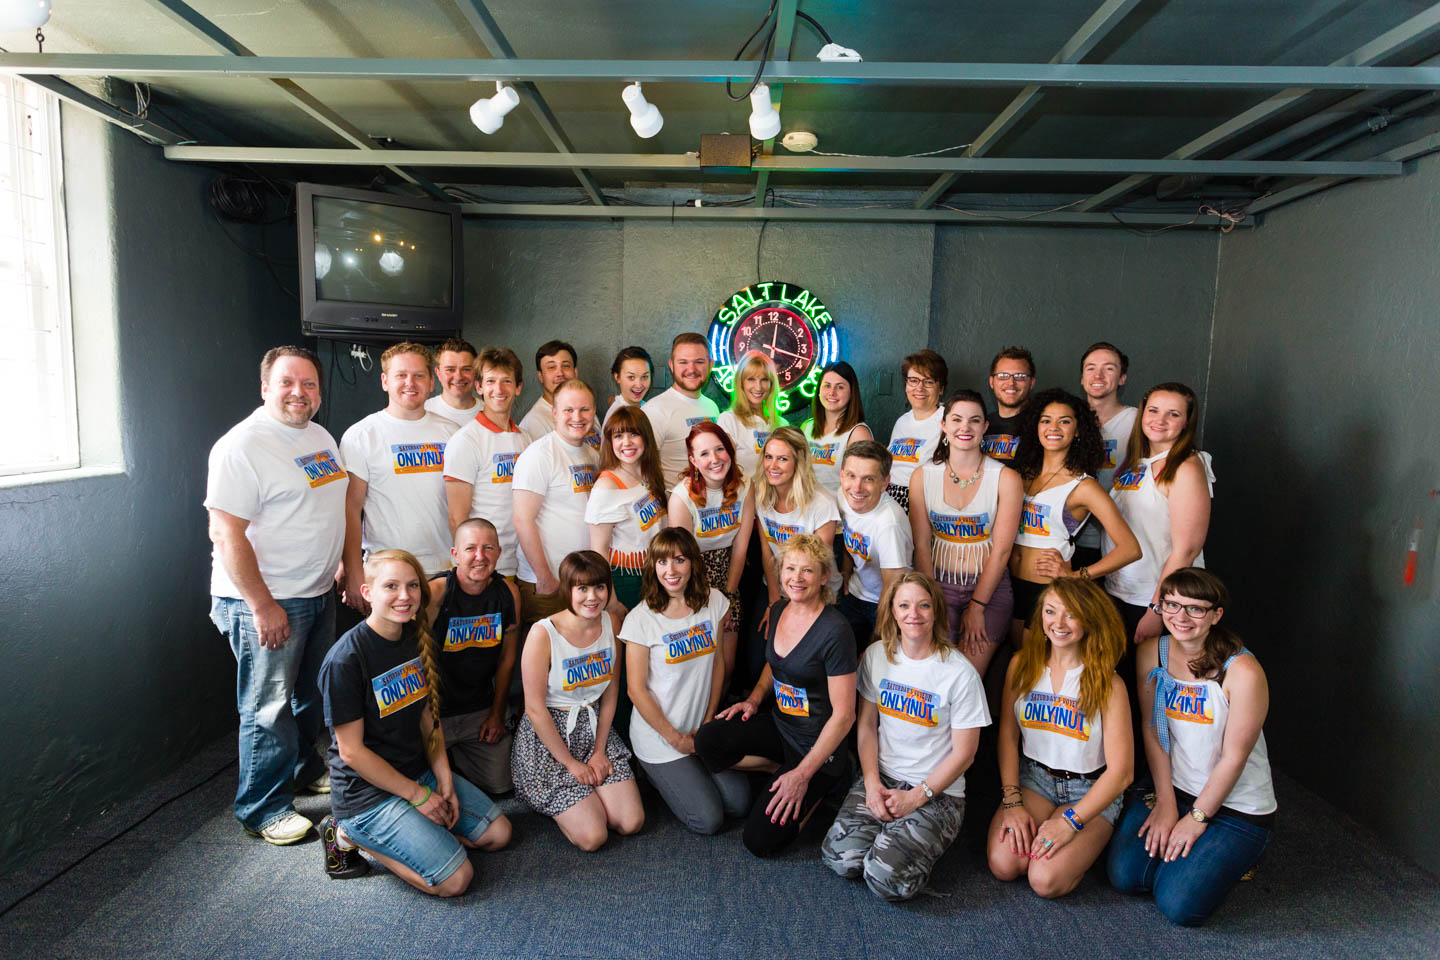 The staff of Salt Lake Acting Company and the cast of Saturday's Voyeur 2013